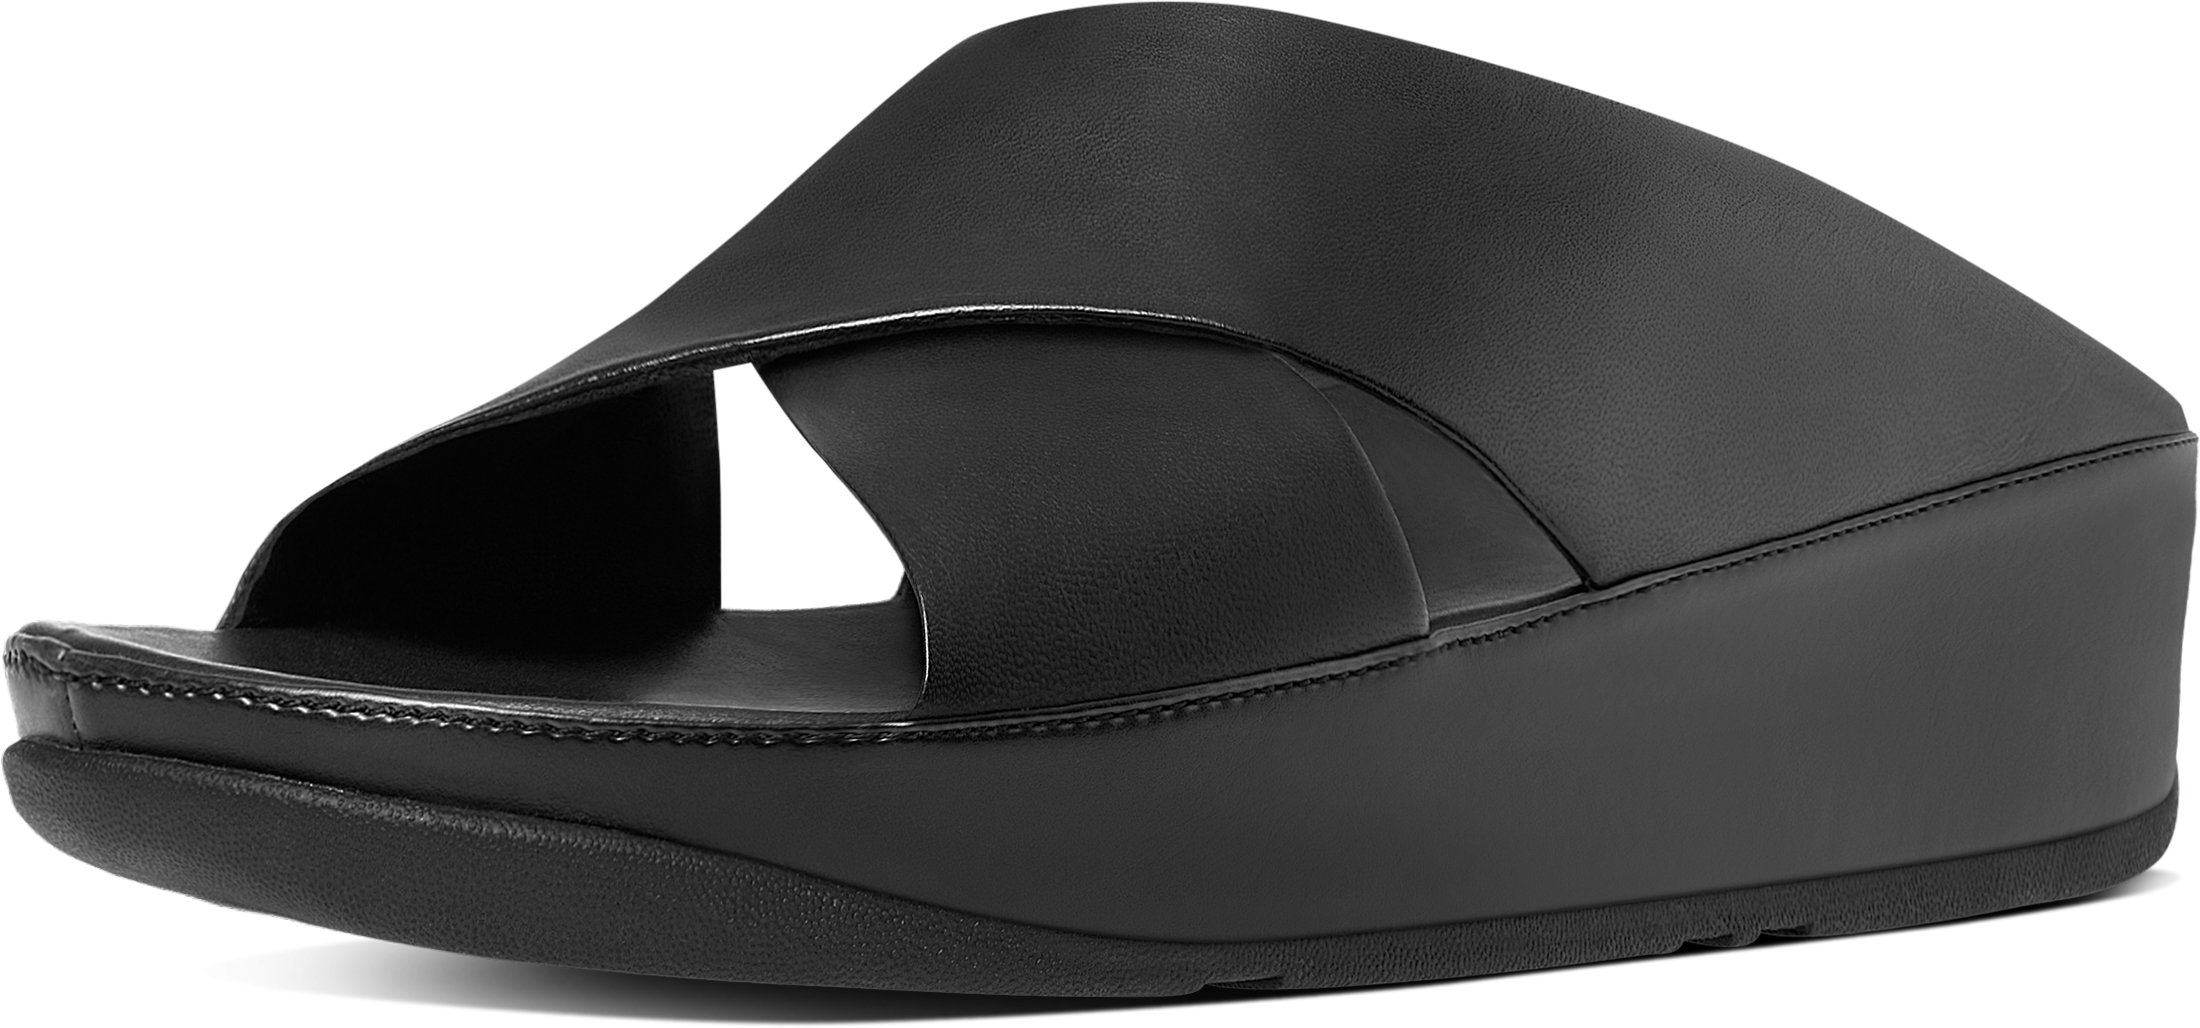 FitFlop Trade; Womens KYS&Trade; Leather Slide Sandals All Black Size 9 by FitFlop